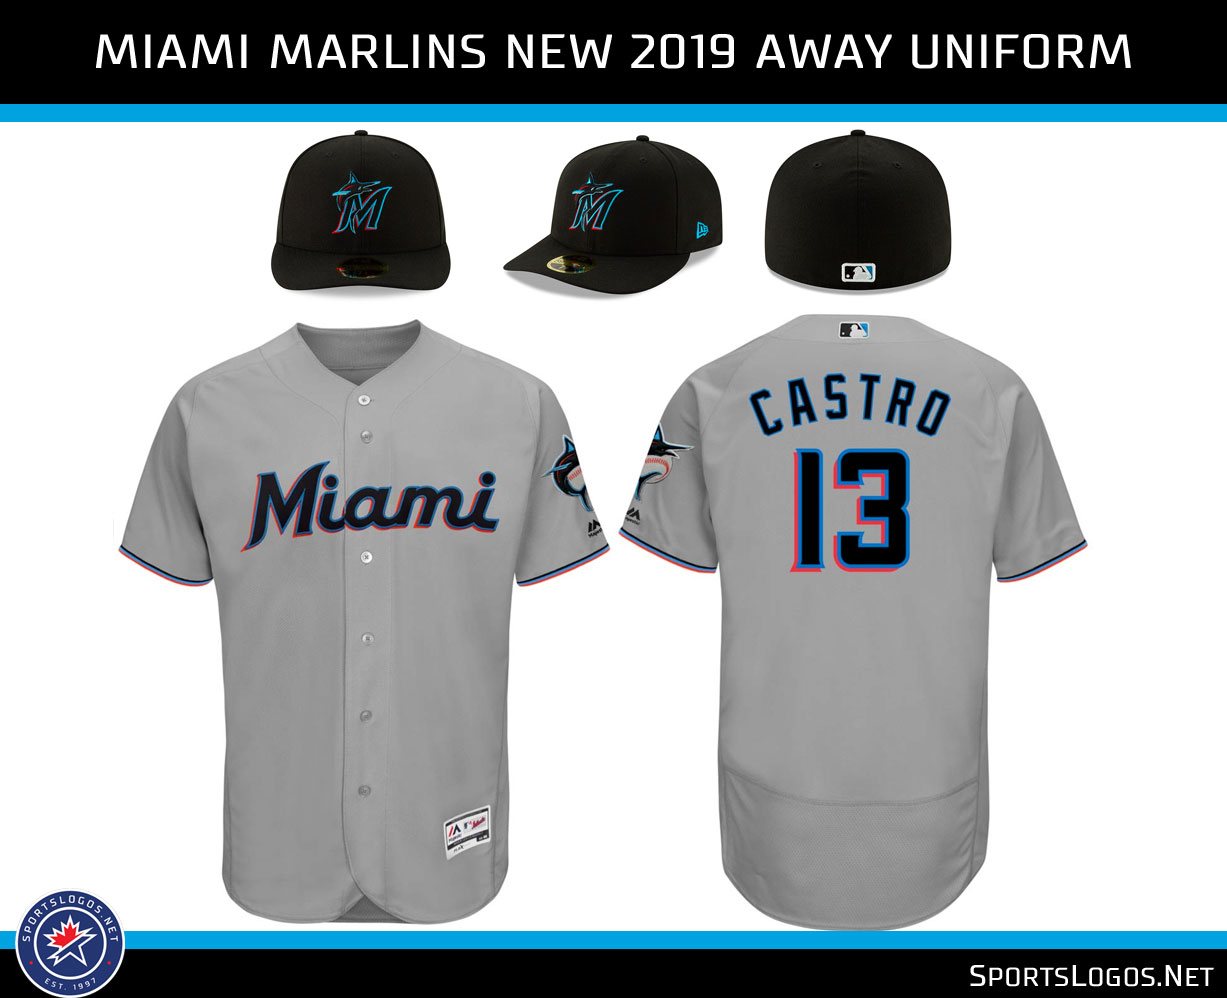 32f59630ea8 The away uniform follows the same format as the home jersey but with a  traditional grey base (no D-backs funny business going on here) instead of  white.